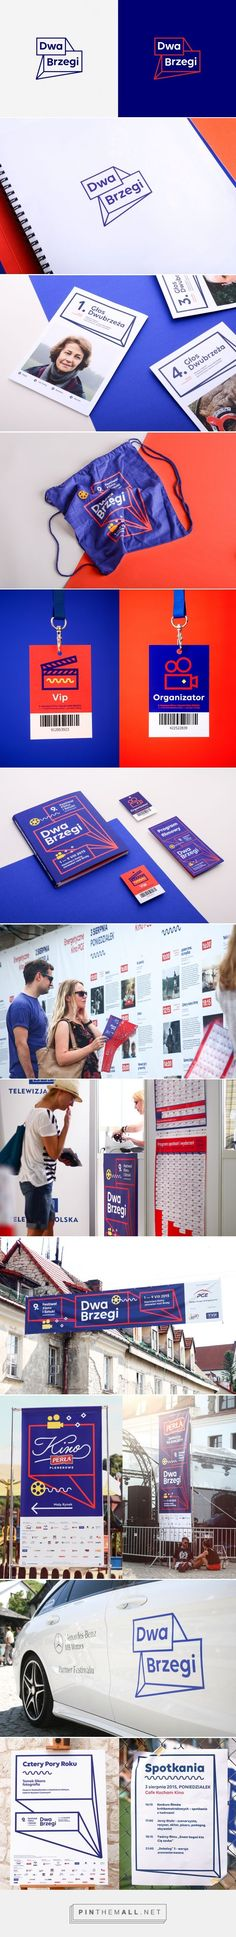 Dwa Brzegi - 9th Film and Art Festival on Behance - created via http://pinthemall.net. If you're a user experience professional, listen to The UX Blog Podcast on iTunes.